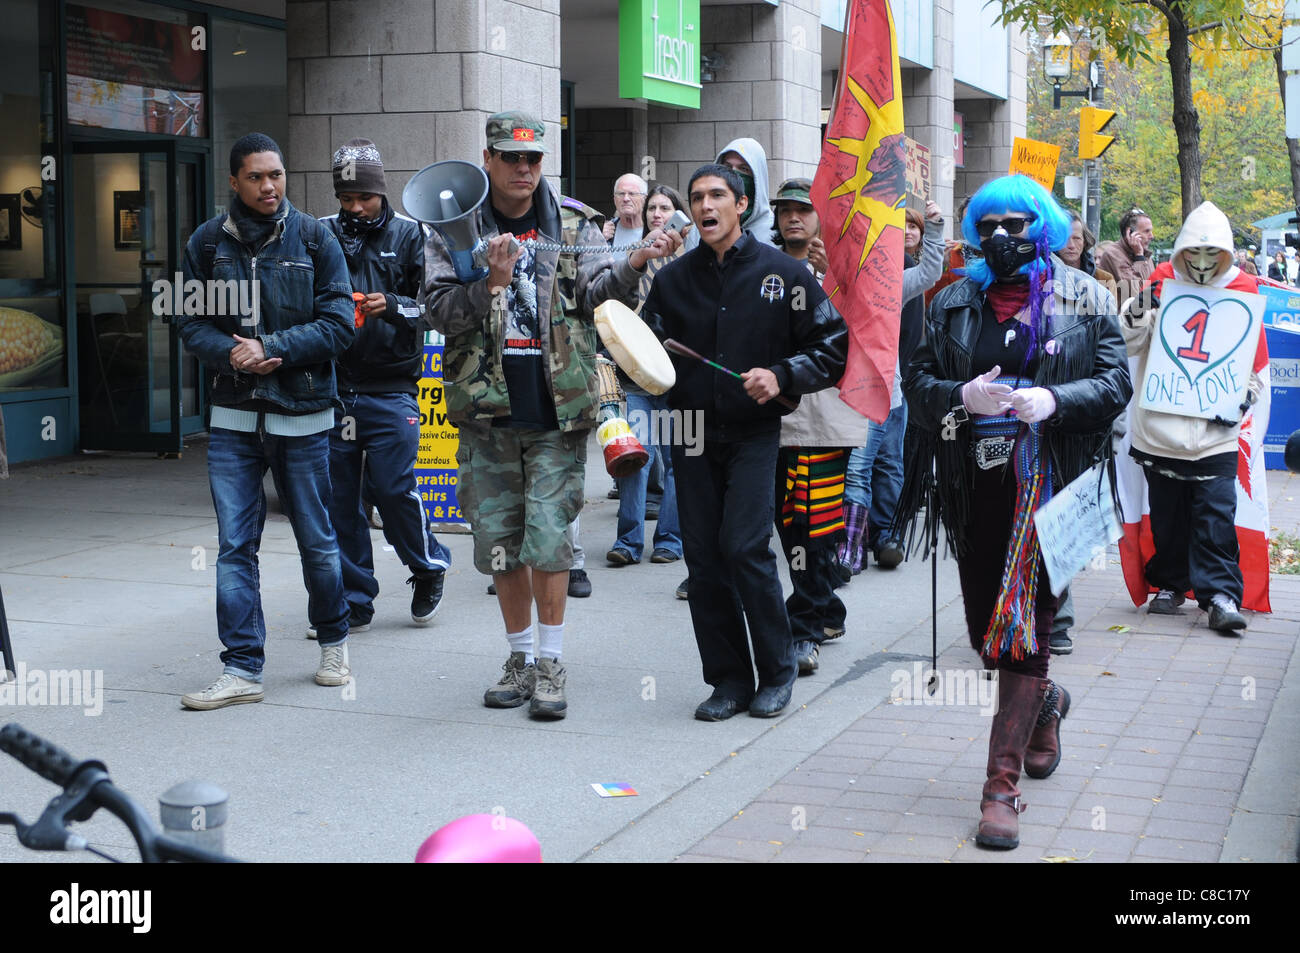 The Occupy Toronto protest movement, unidentified First Nations marchers in downtown Toronto, October 18, 2011. - Stock Image